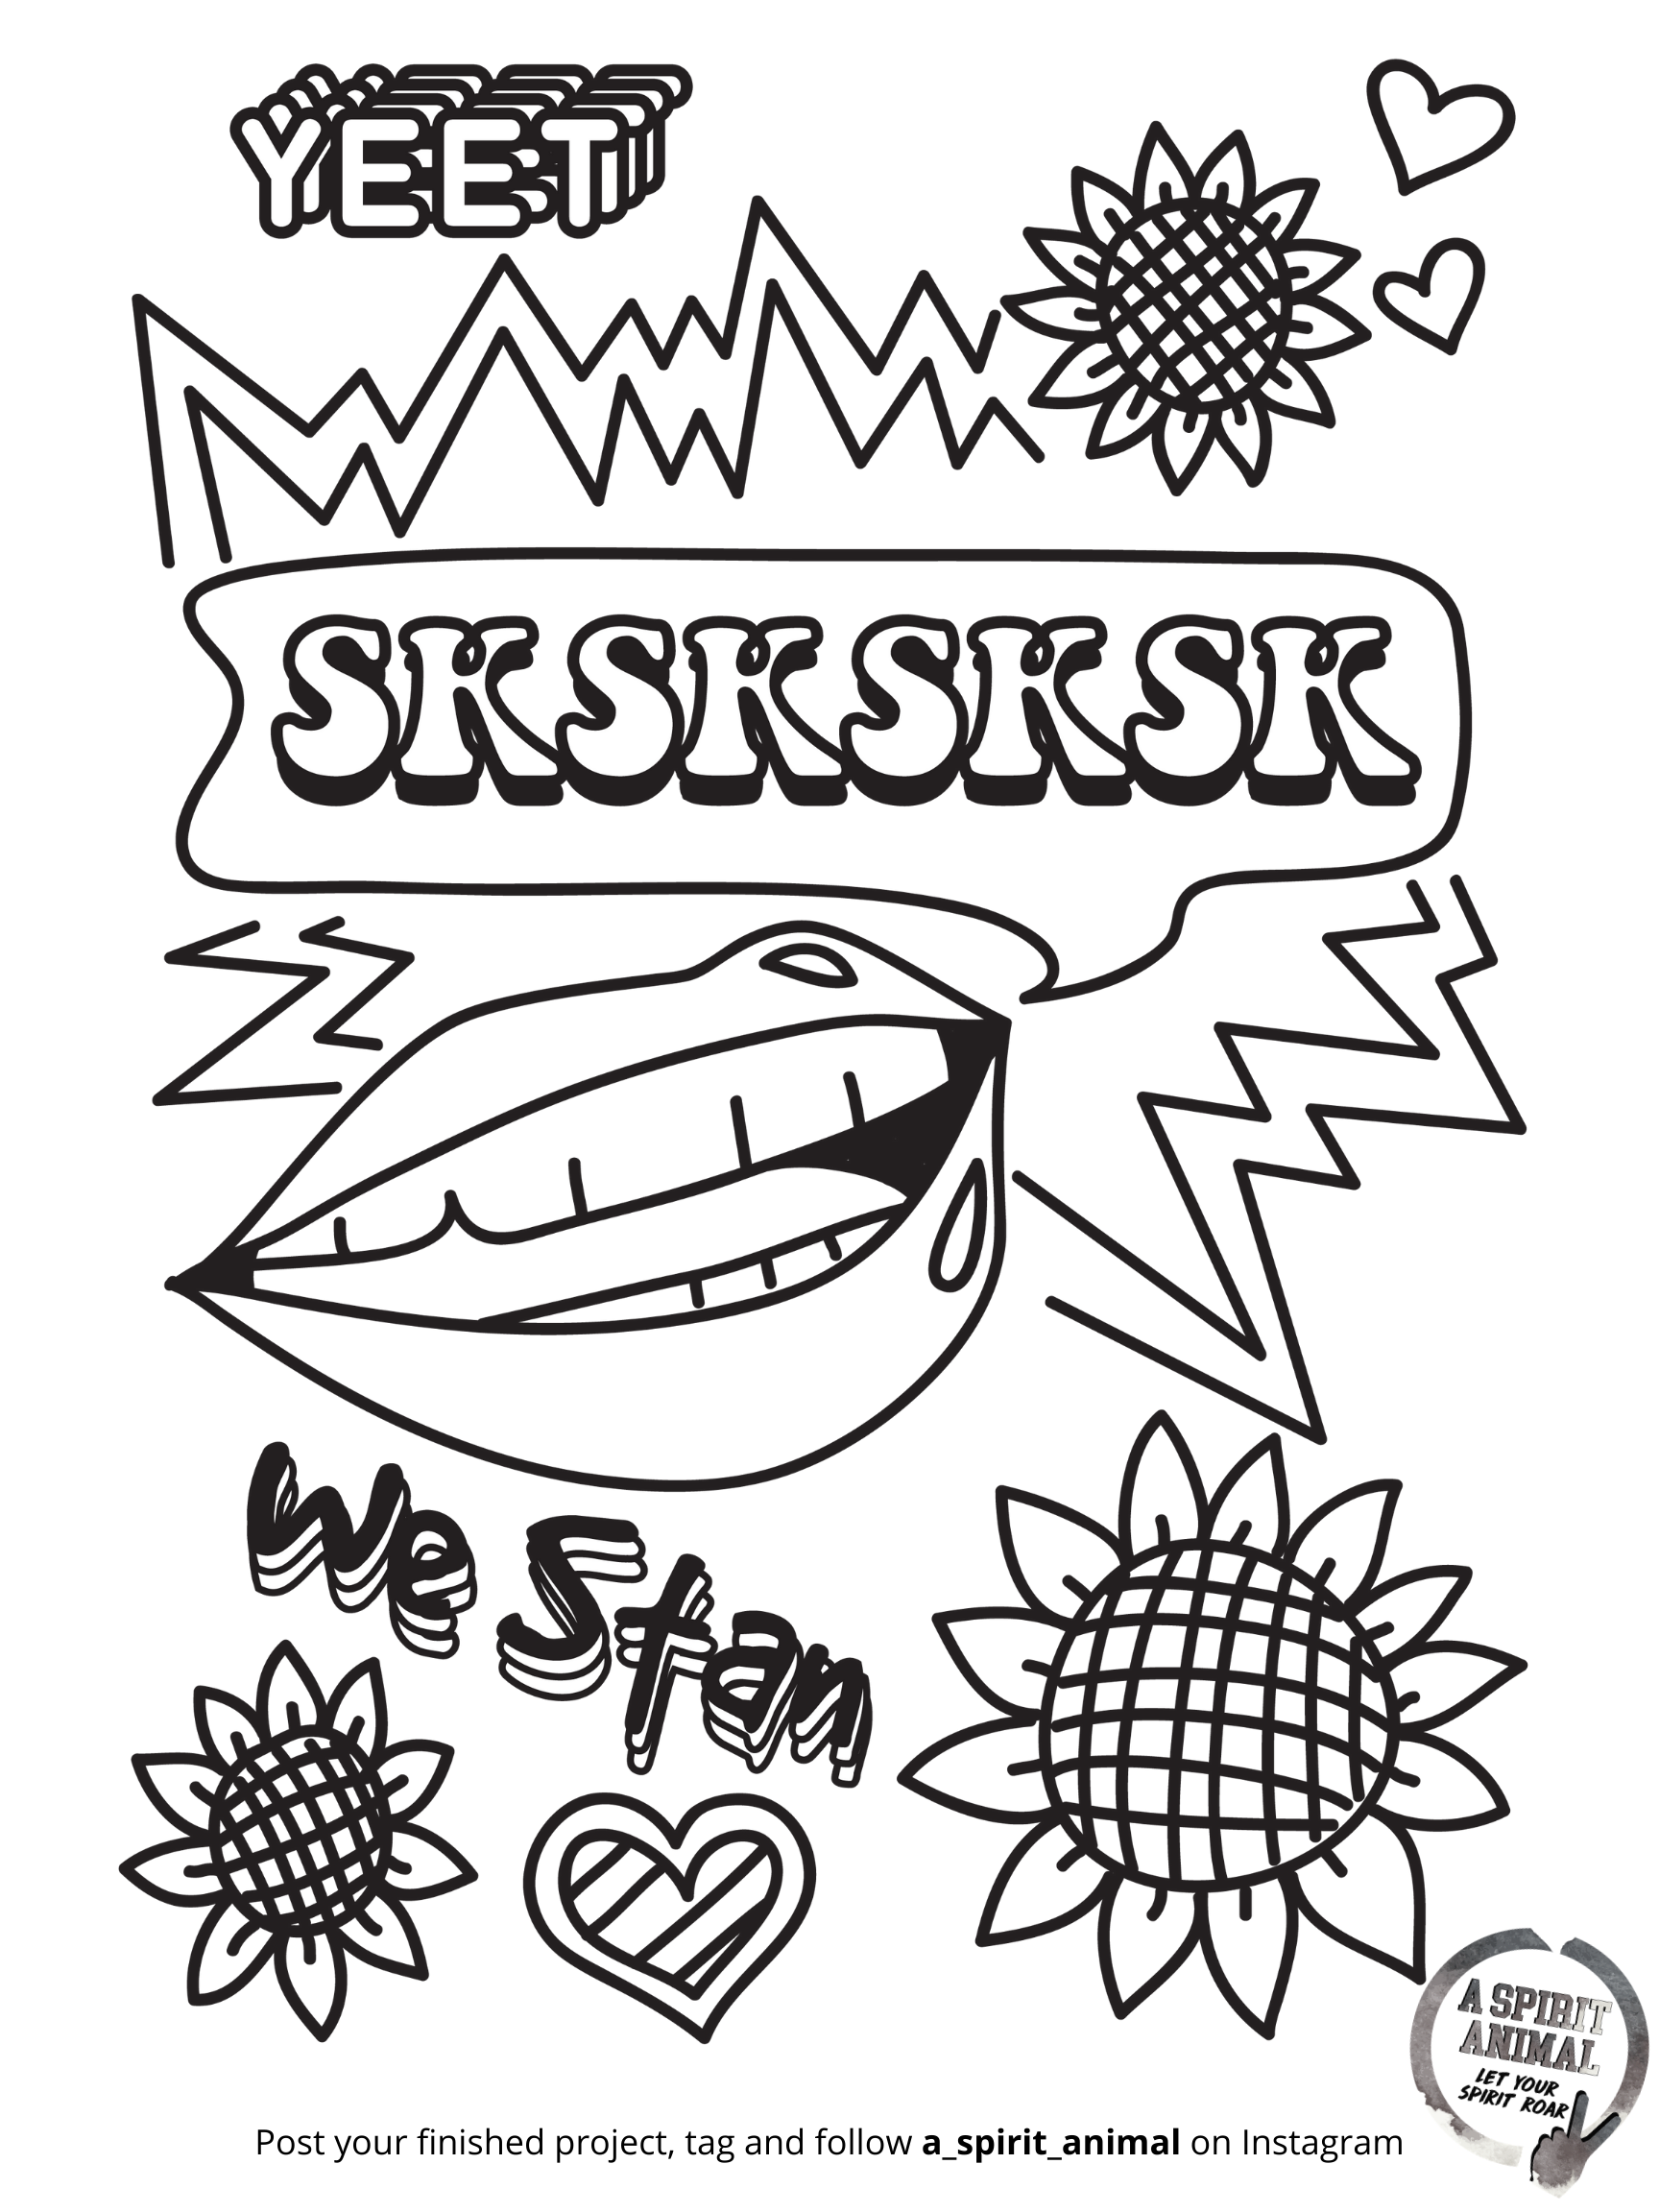 Sksksksk Lips Yeet Vsco Girl A Spirit Animal Free Holiday Activity Coloring Pages Coloring Pages Coloring Pages For Girls Cute Coloring Pages